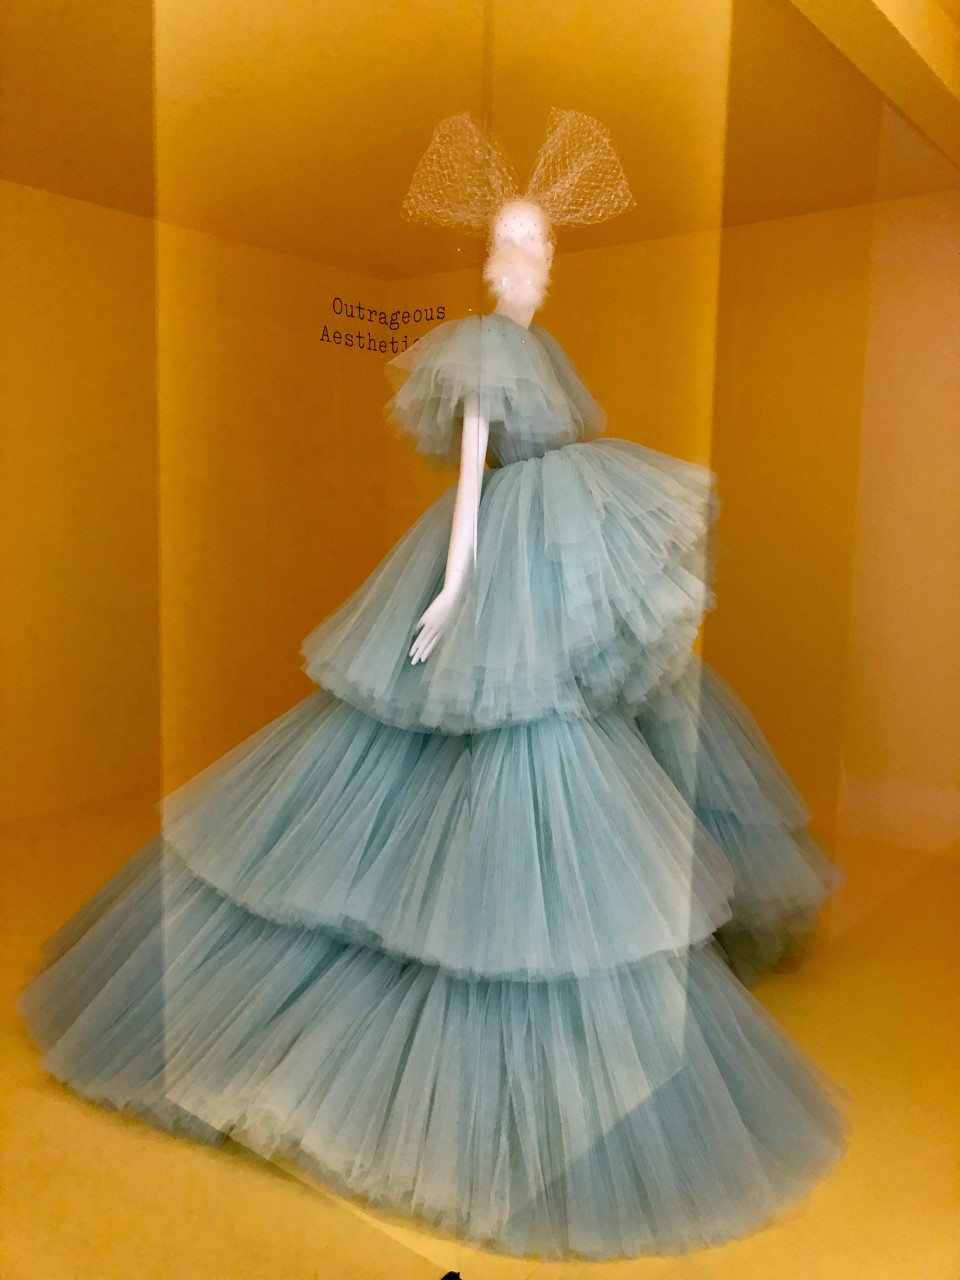 The Metropolitan Museum of Art's exhibition, Camp: Notes on Fashion - Outrageous Aesthetics (Photo: Ceara Rossetti)